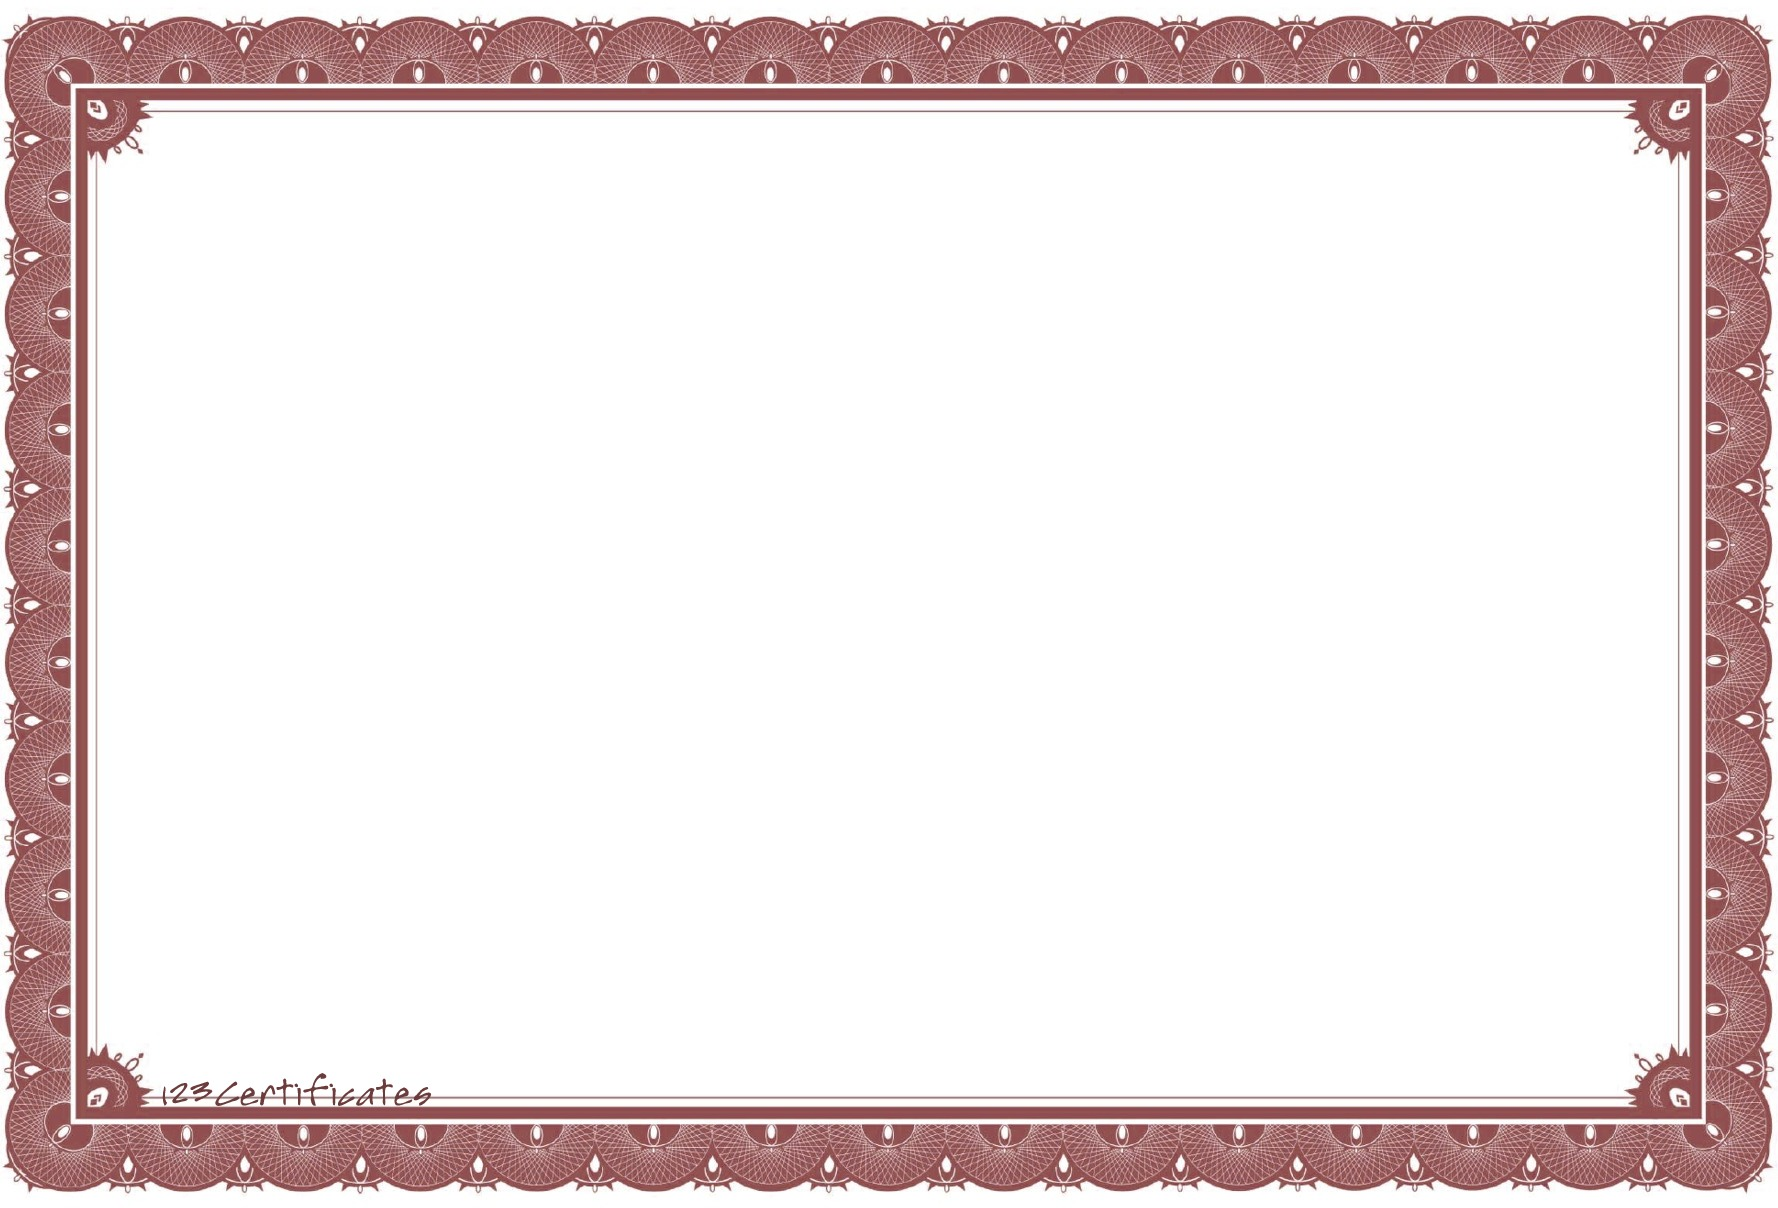 Dark Red Scalloped Edge Border - 123 Certificates